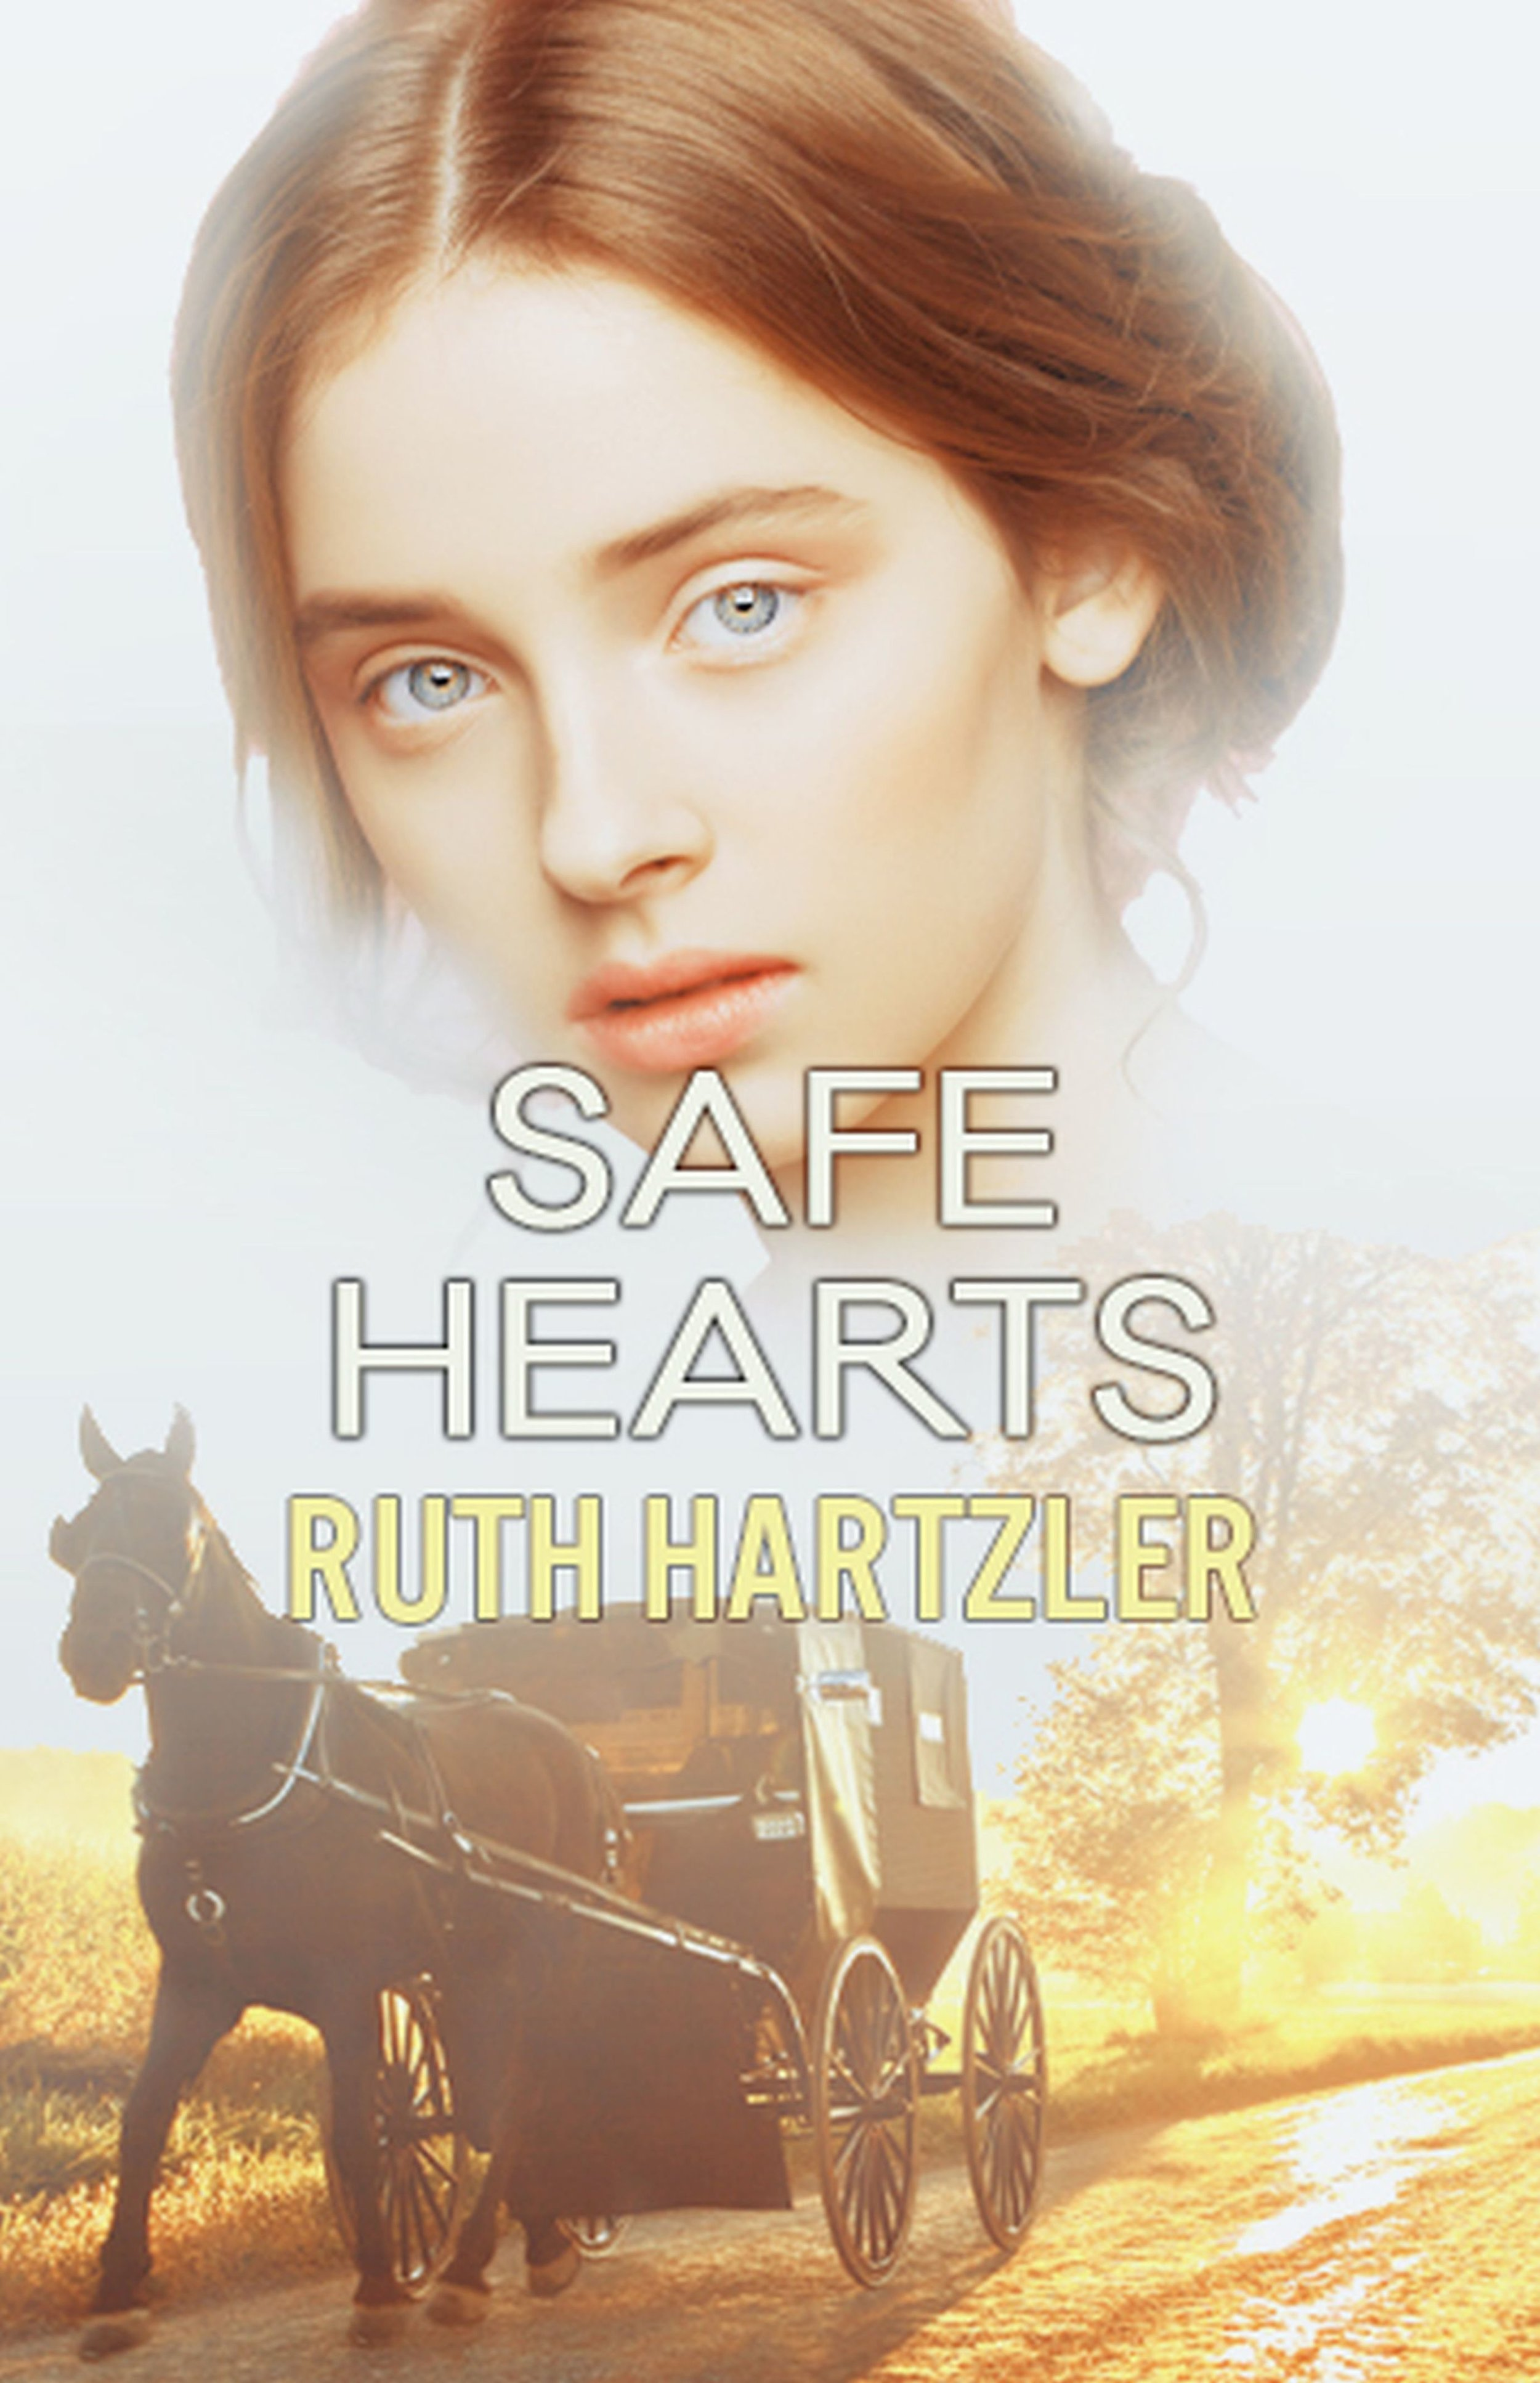 Safe Hearts - Amish Safe House Book 3 (Christian Romantic Suspense)30,000 word novellaU.S. Marshal, Kate Briggs, is still posing as an Amish woman. When the cousin of one of the Amish Knitting Circle ladies is accused of murder, Kate once again throws herself into the investigation. However, the criminal looking for her has finally tracked her down to the small Amish community in which she is hiding. How will Kate protect not only herself, but the entire community, from the desperate criminal?When Kate's identity is revealed, how will everyone react, especially Detective Ryan Weaver?AmazonNookKoboGoogle PlayAppleIn This Series:Book 1: Off the GridBook 2: In Plain View Book 3: Safe HeartsAlso available as 3 Book Box Set, Amish Safe House Three Book Box Set